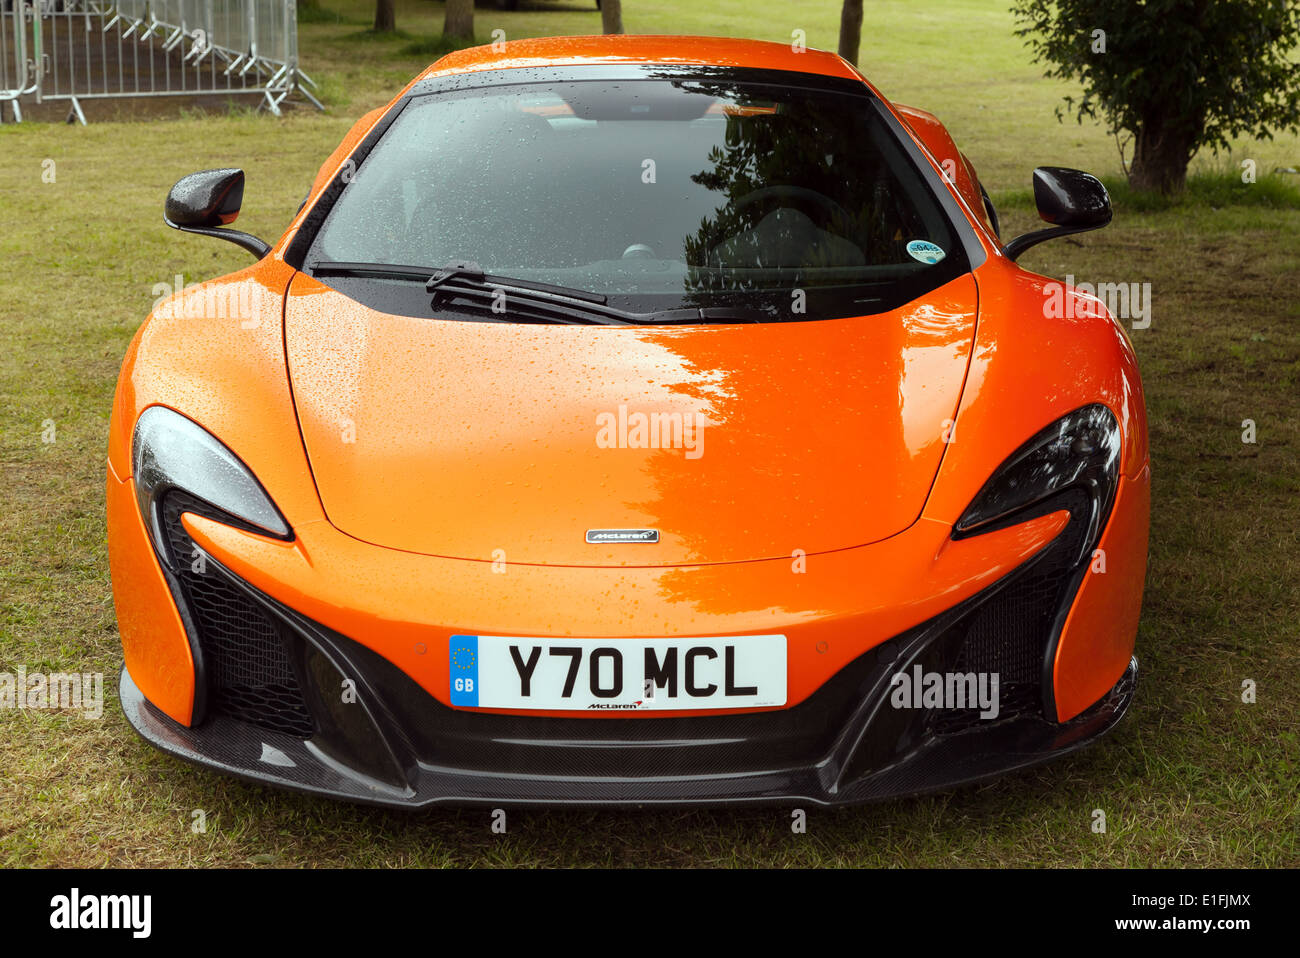 A McLaren 12C Spider Super Sports Car  on static display at motorsport at the palace 2014. - Stock Image